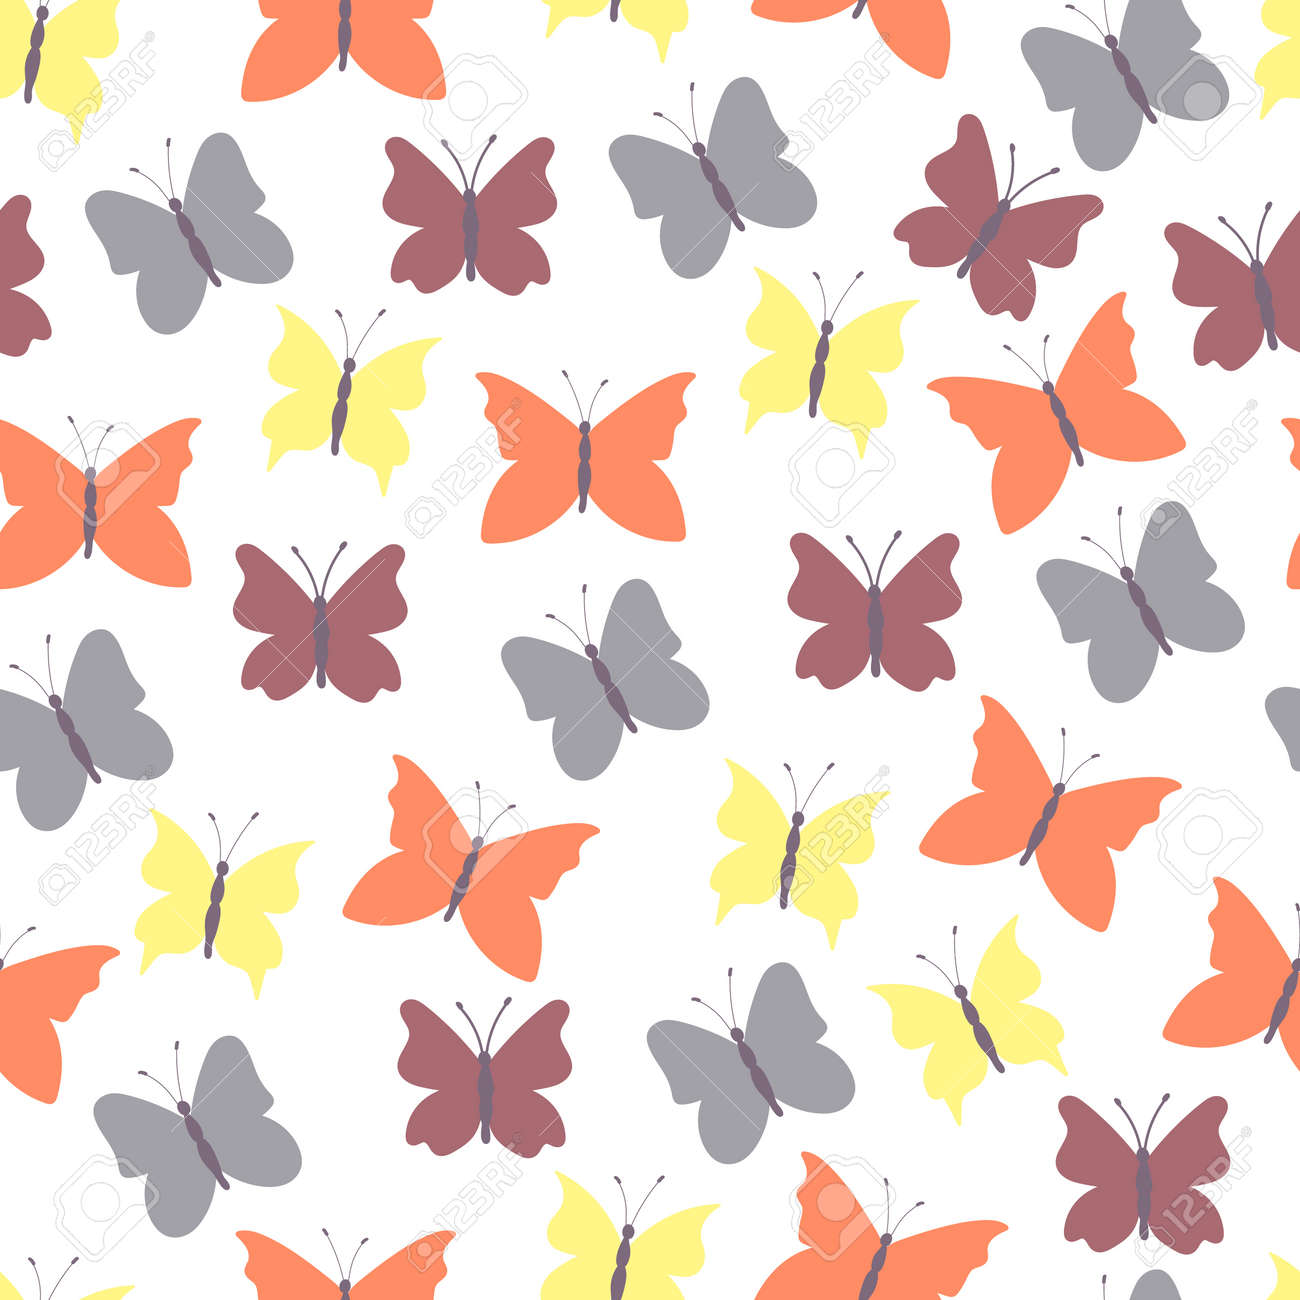 Abstract seamless background colored butterflies.Colorful flat design for fabric and textile. - 169605834